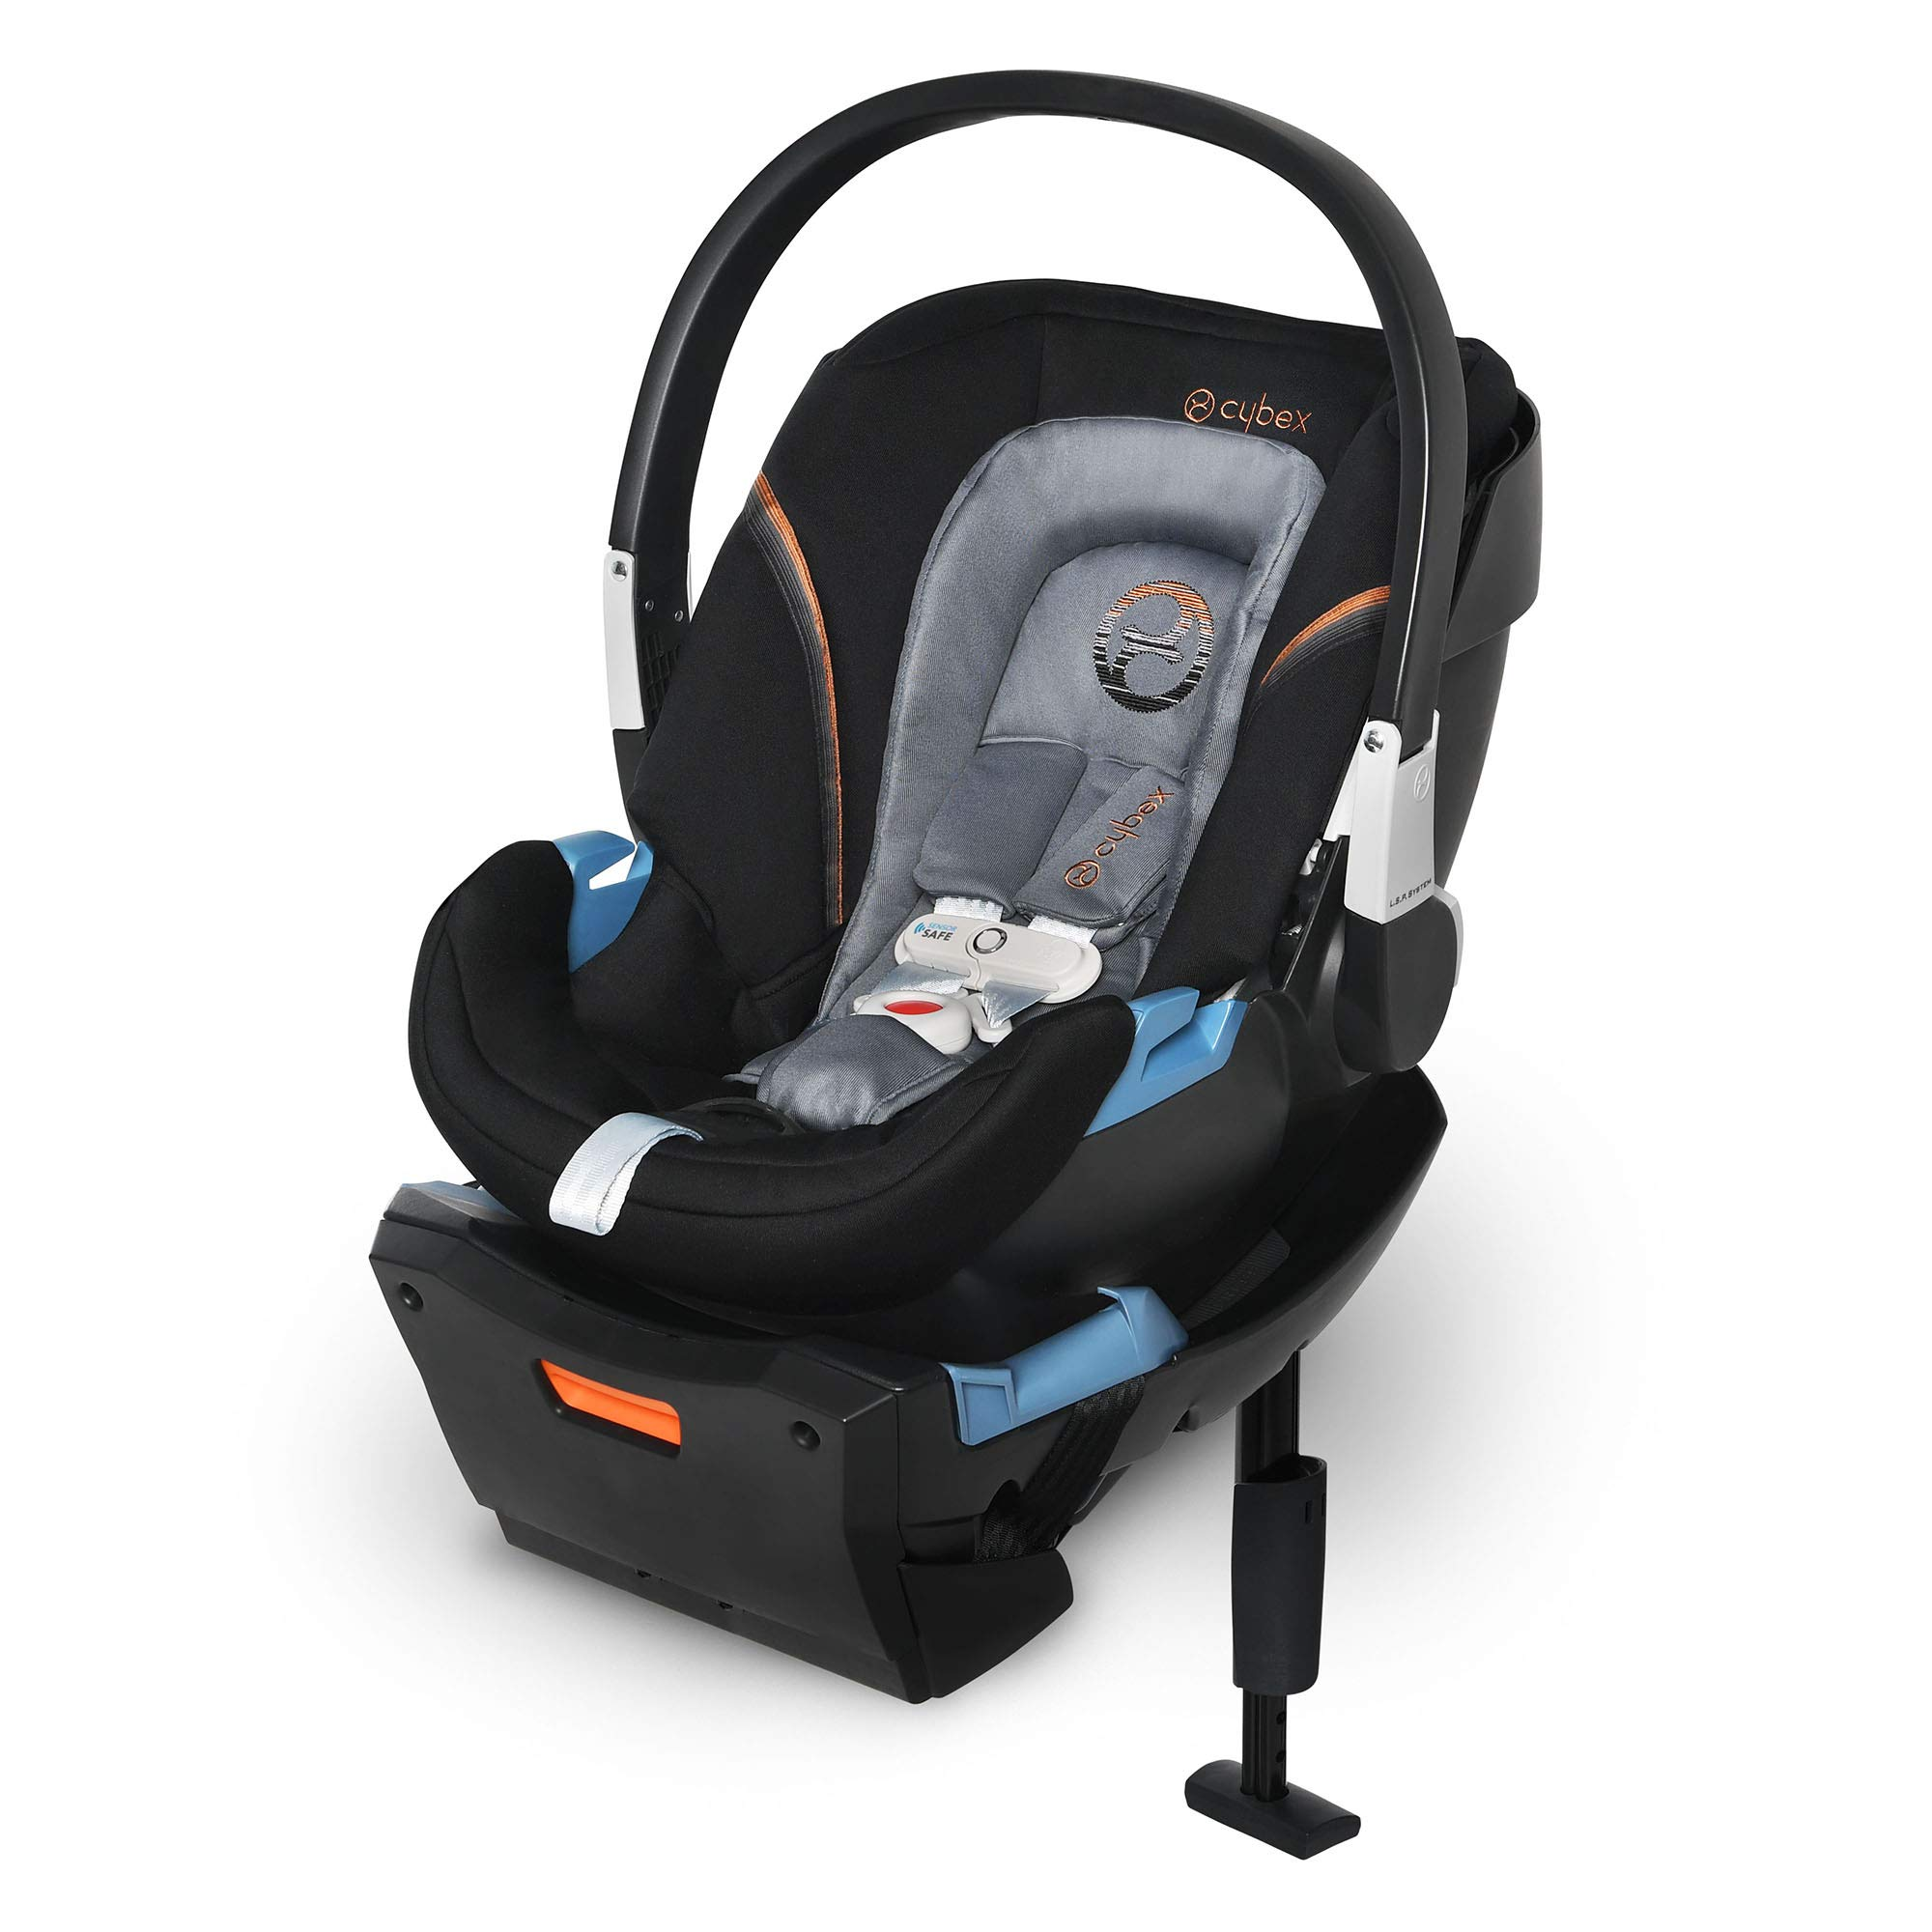 Cybex Aton 2 Sensorsafe, Pepper Black